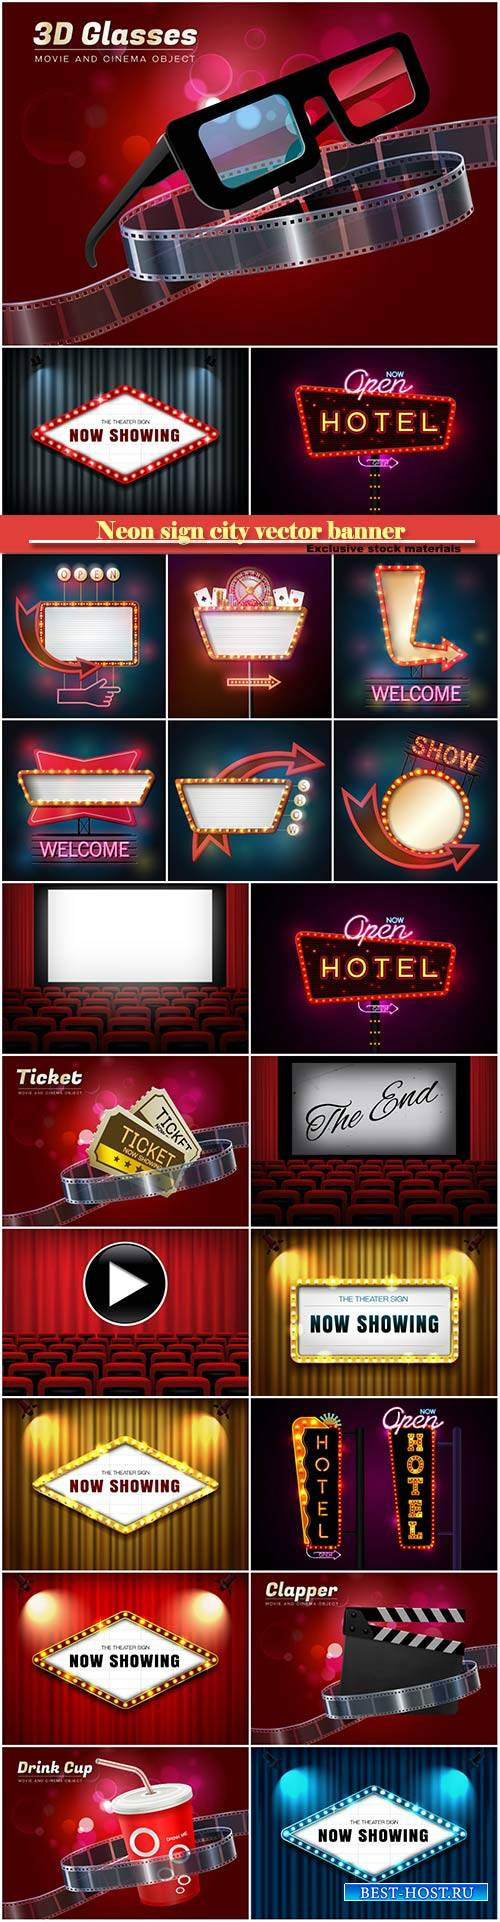 Neon sign city vector banner, cinema background